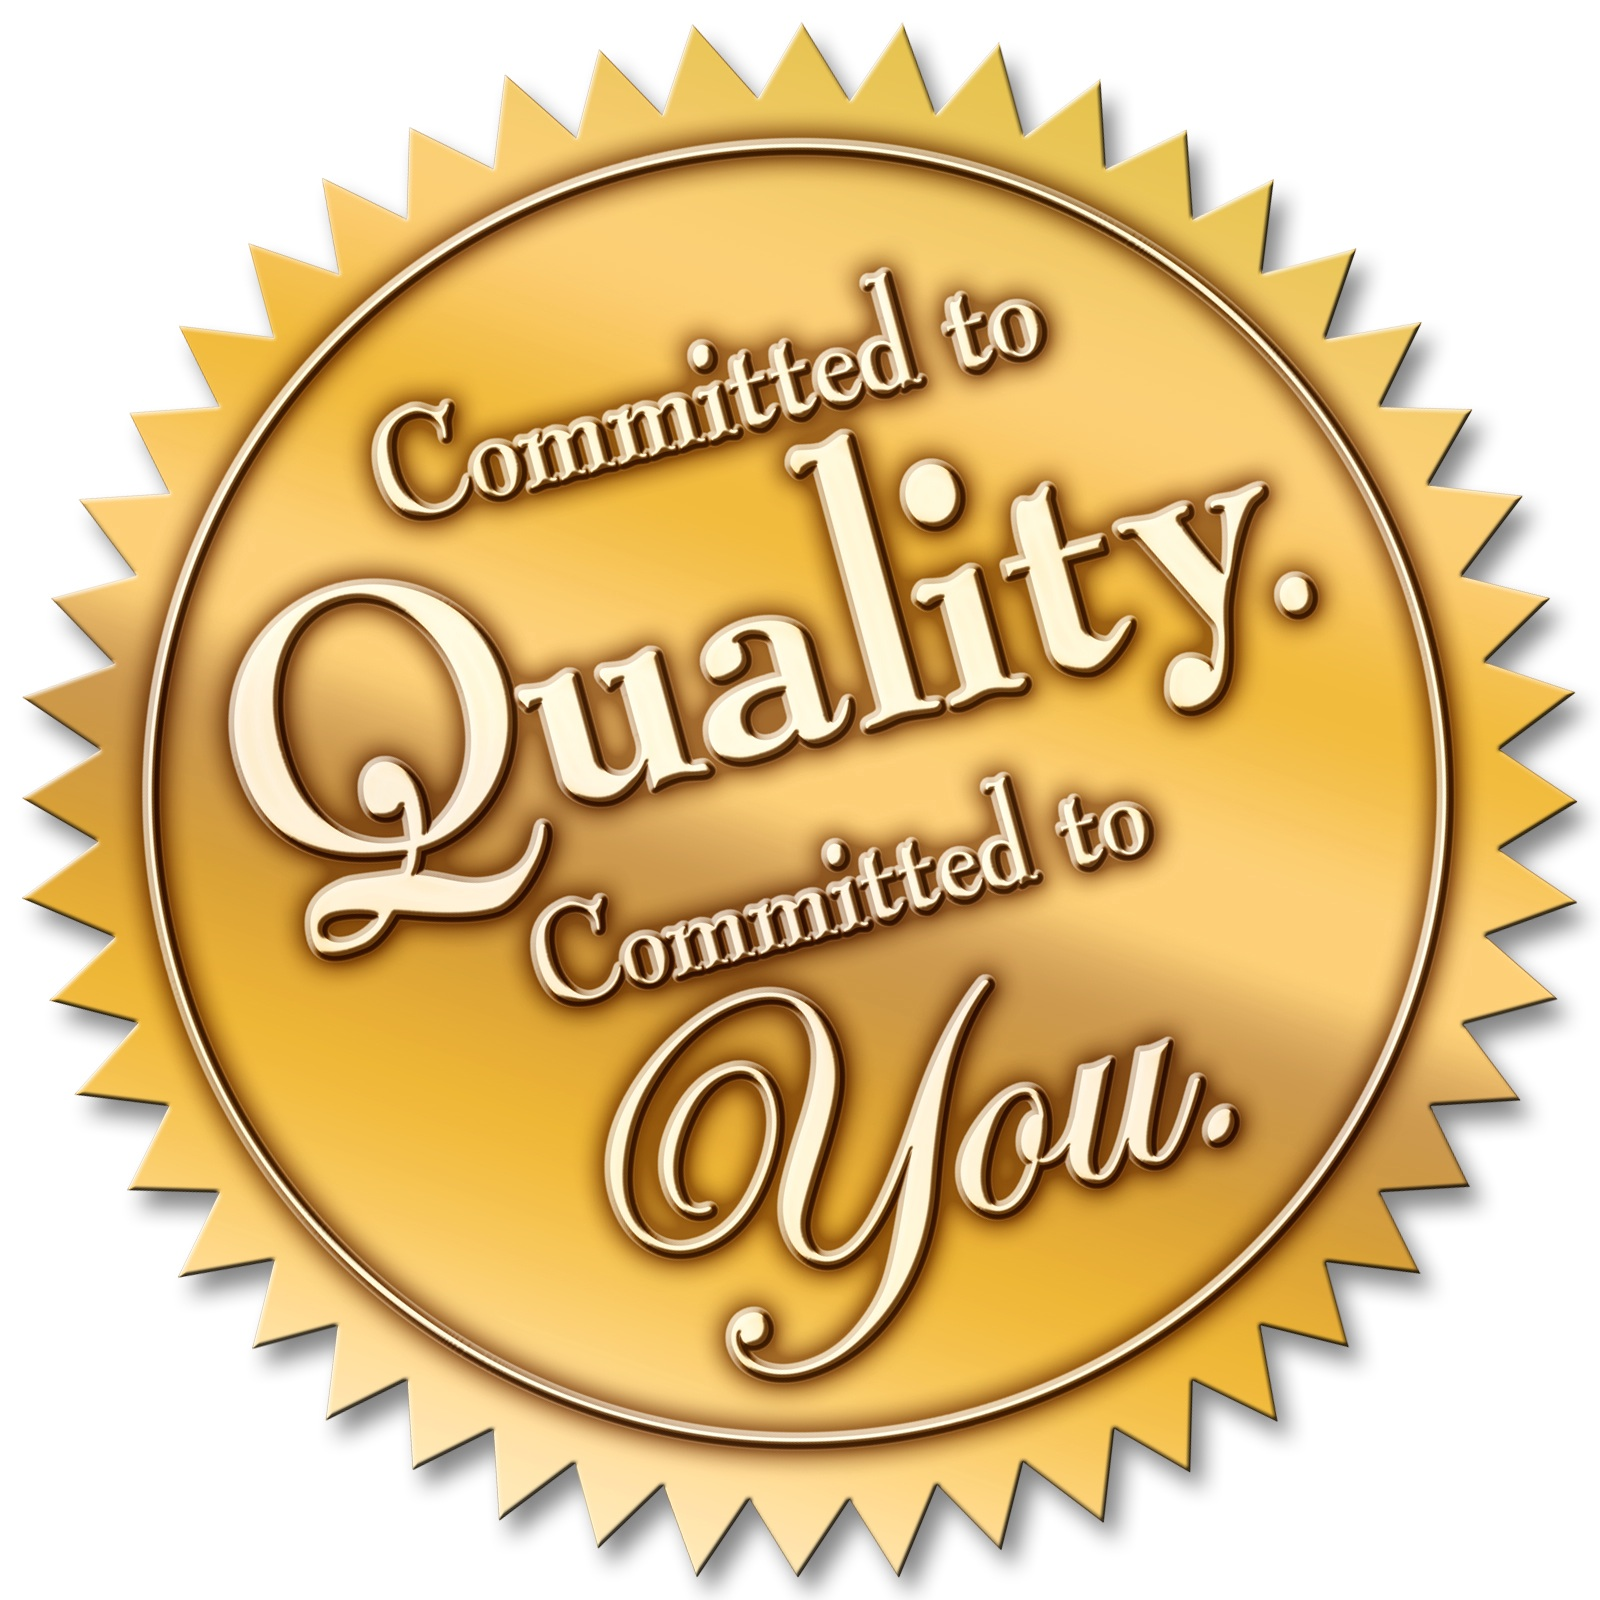 What is the quality of products from China 68